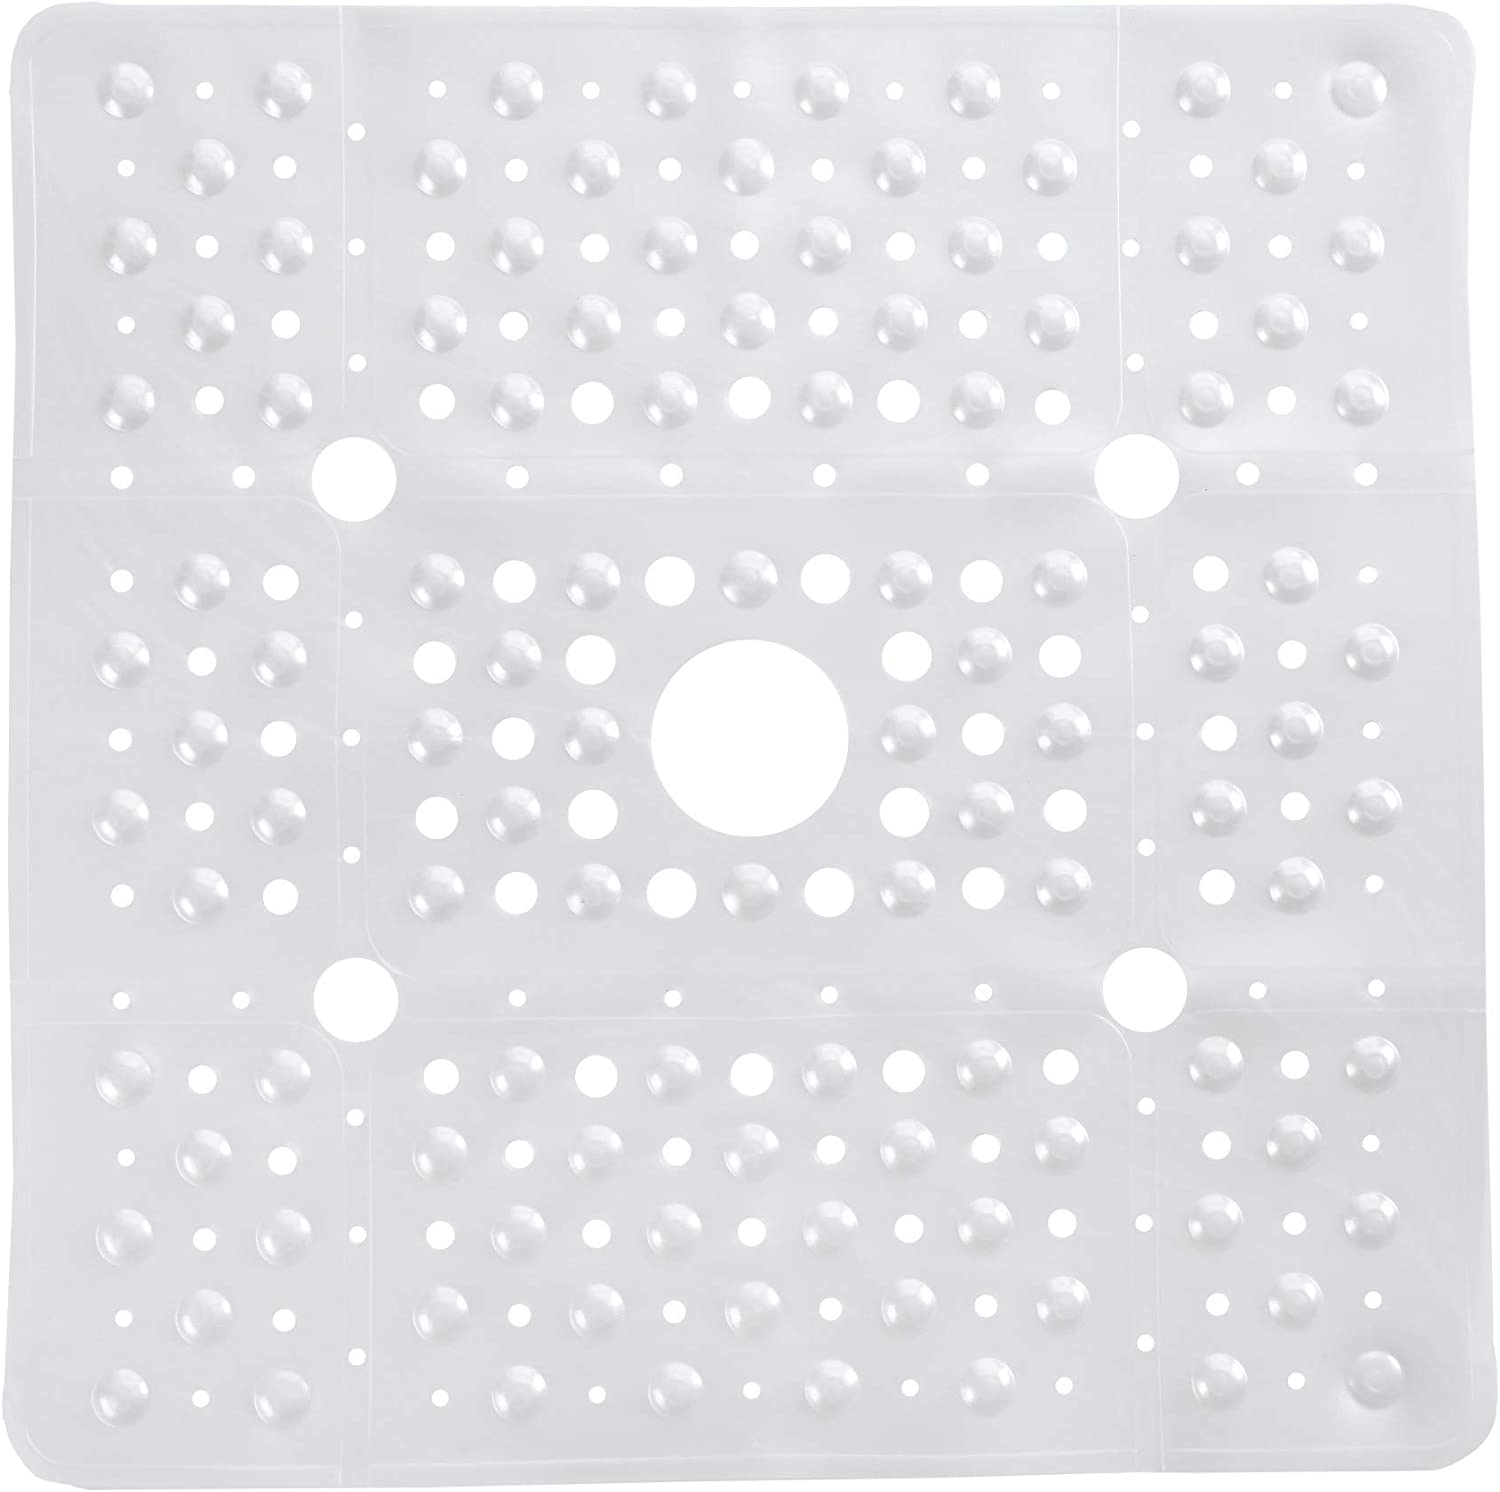 SlipX Solutions Extra Large Square Shower Mat, 27 x 27 Inches, Provides More Coverage & Non-Slip Traction (100 Suction Cups, Great Drainage, White Pearl): Health & Personal Care